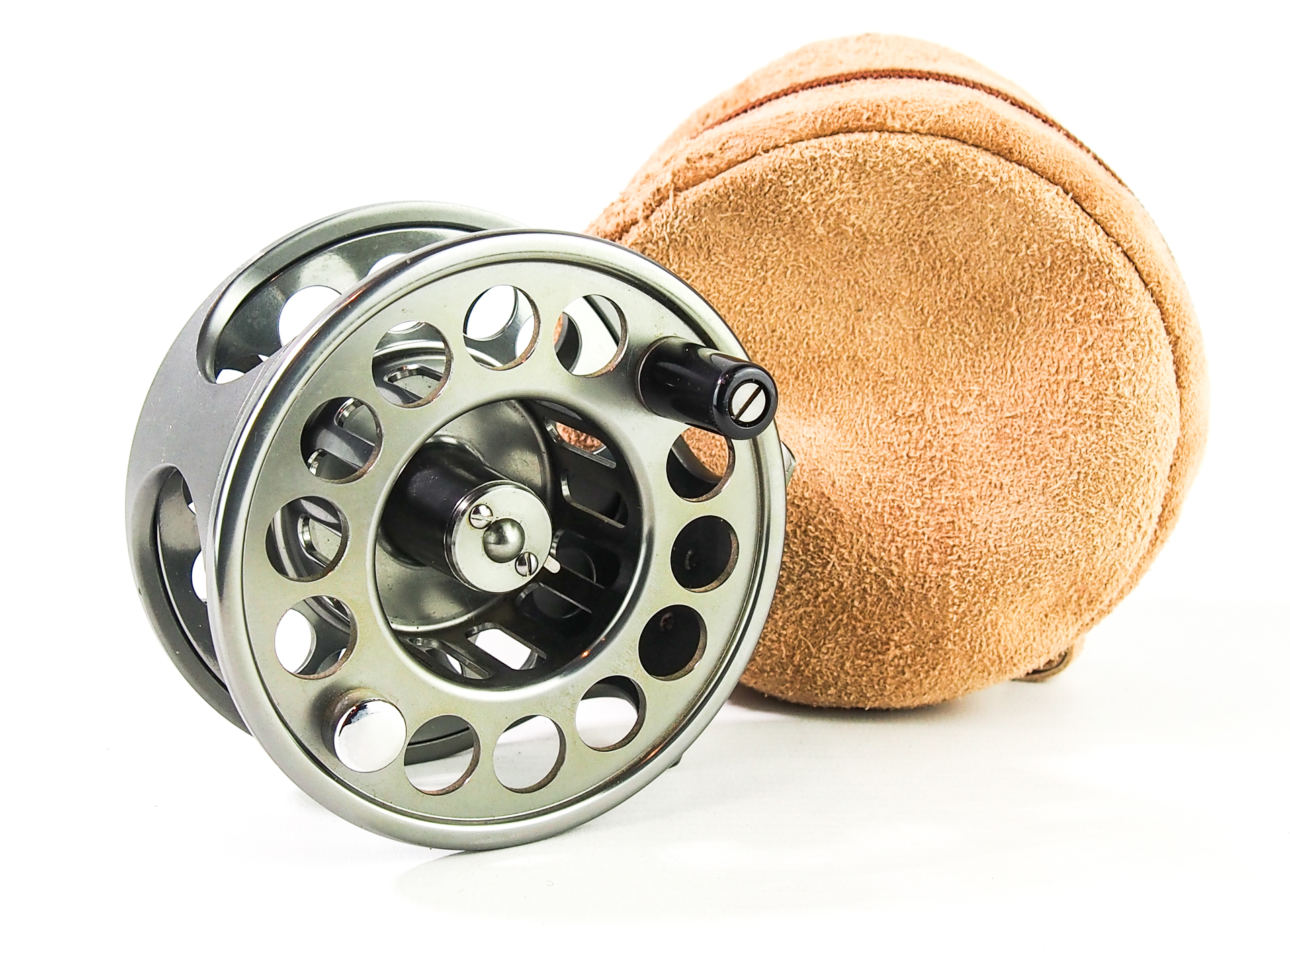 Guideline Rem 7 9 4 Light Salmon Trout Fly Reel